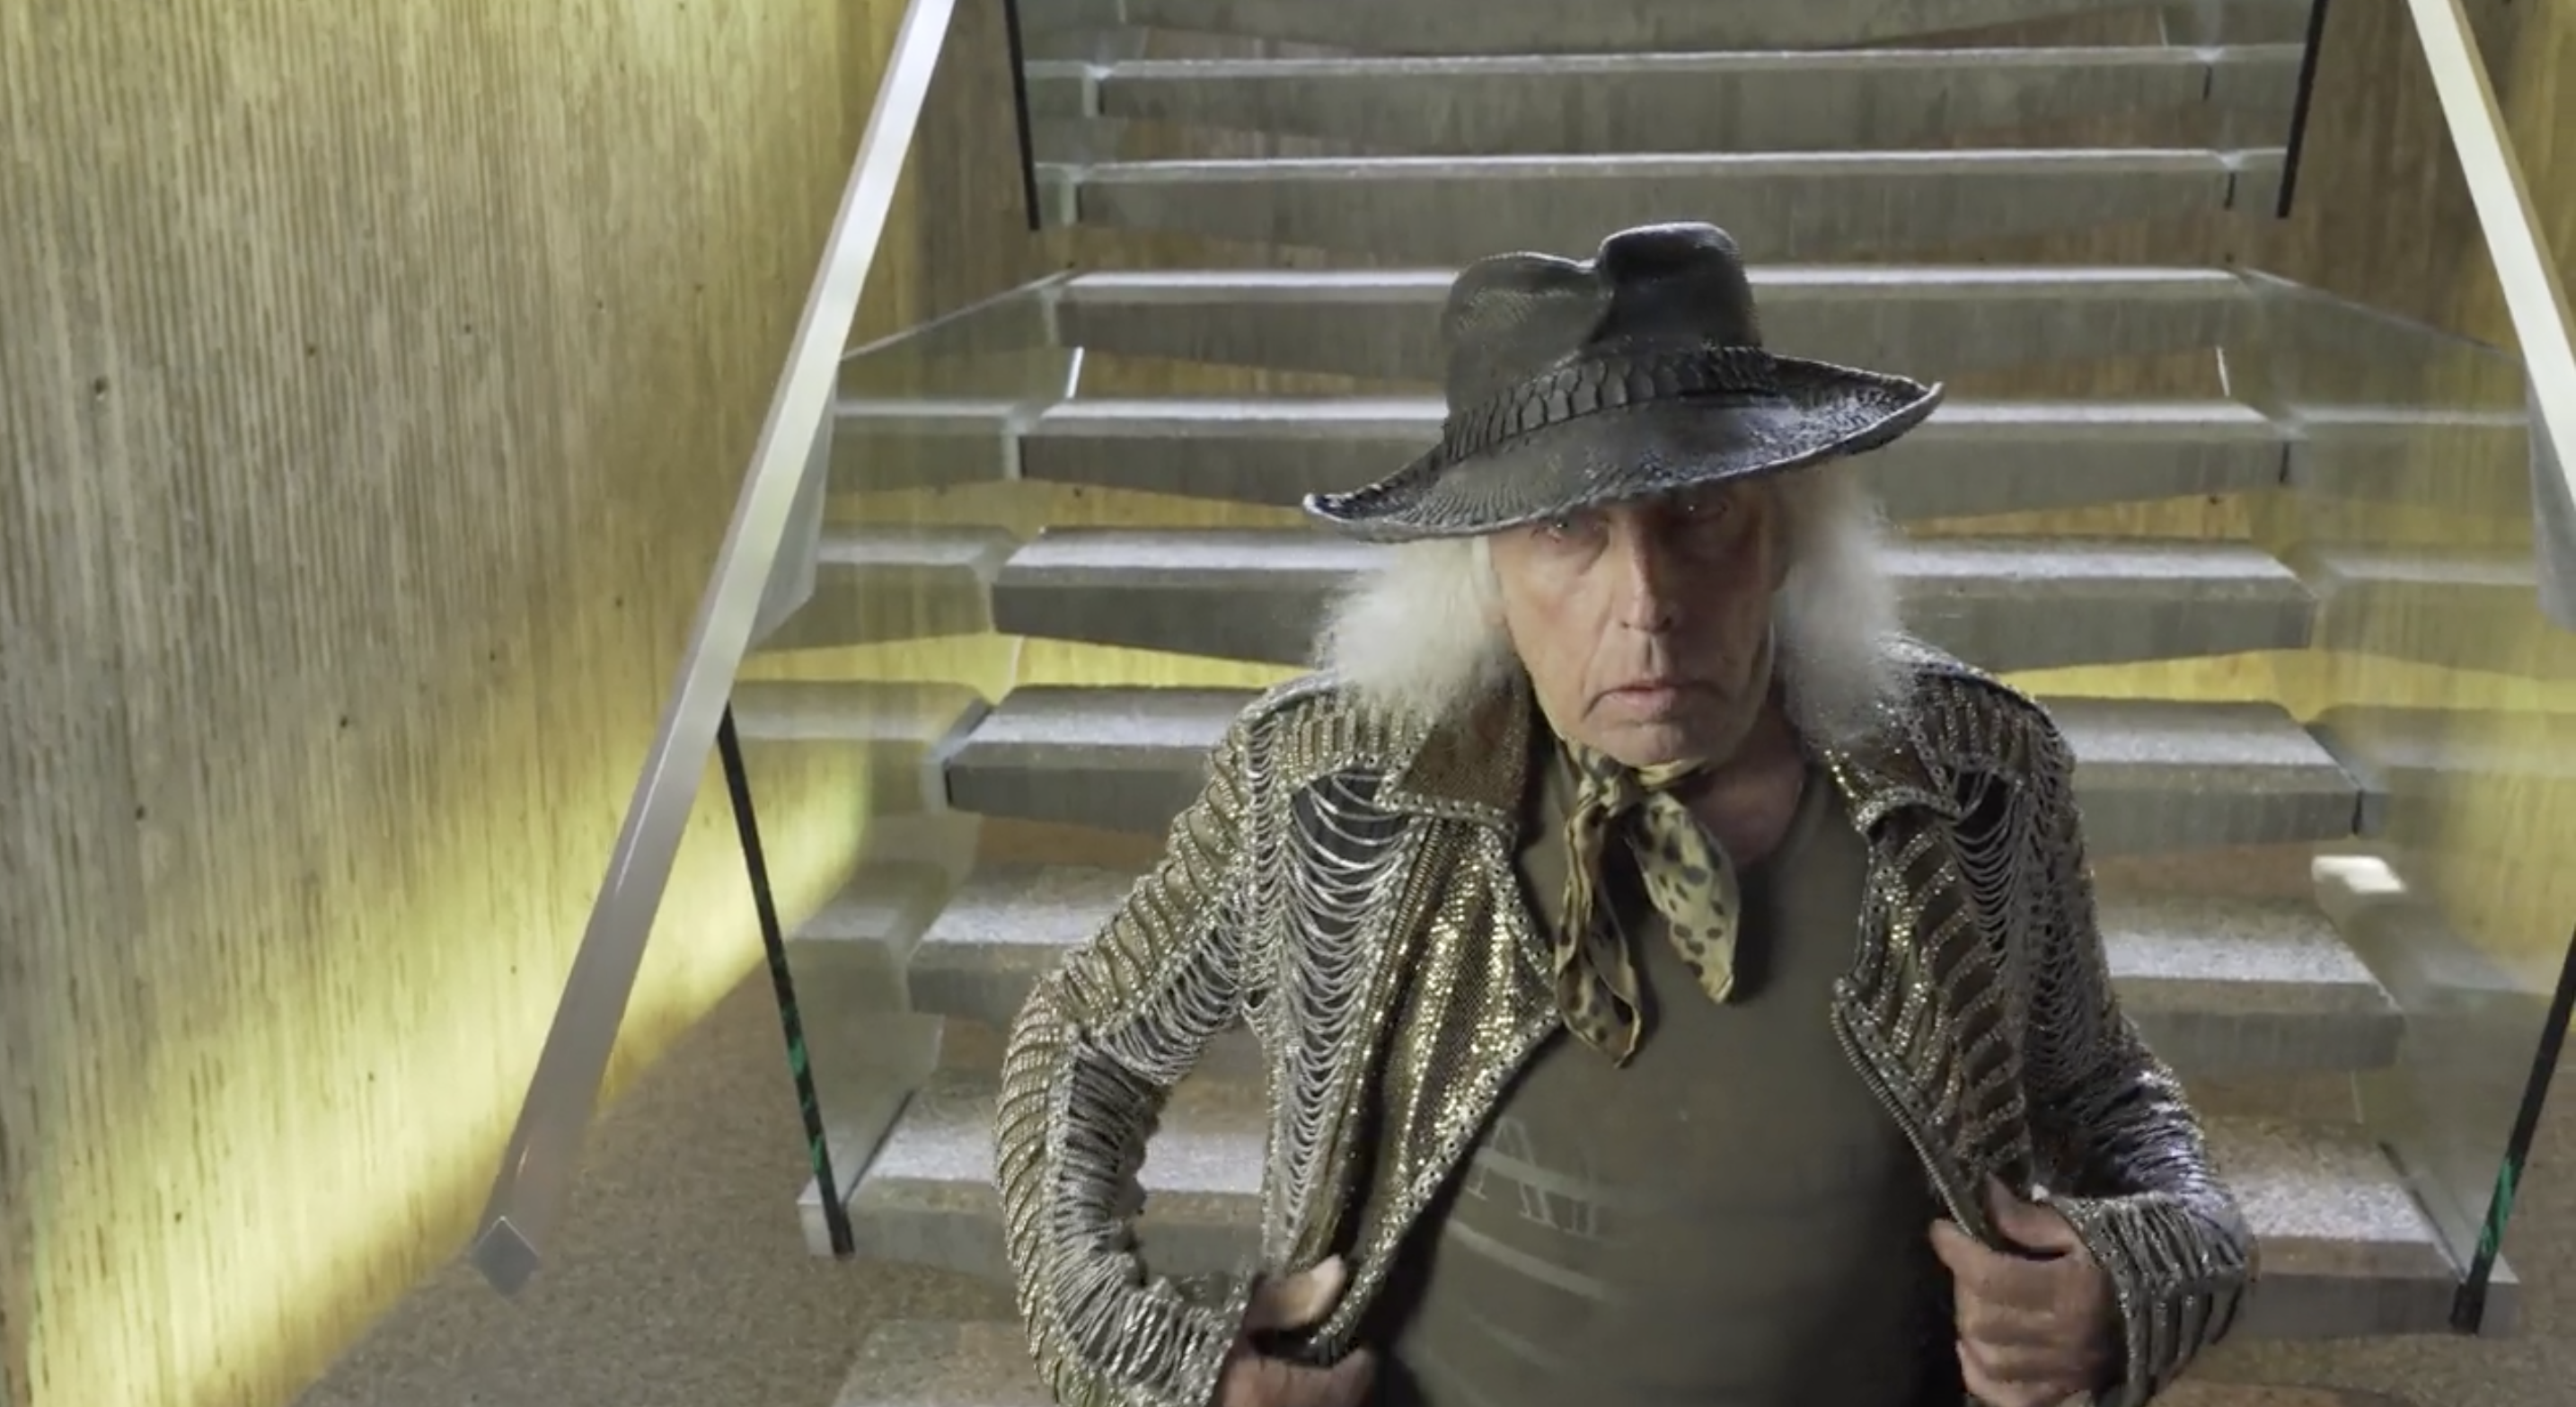 Legendary James Goldstein Gives A Tour Of His Nightclub And Home